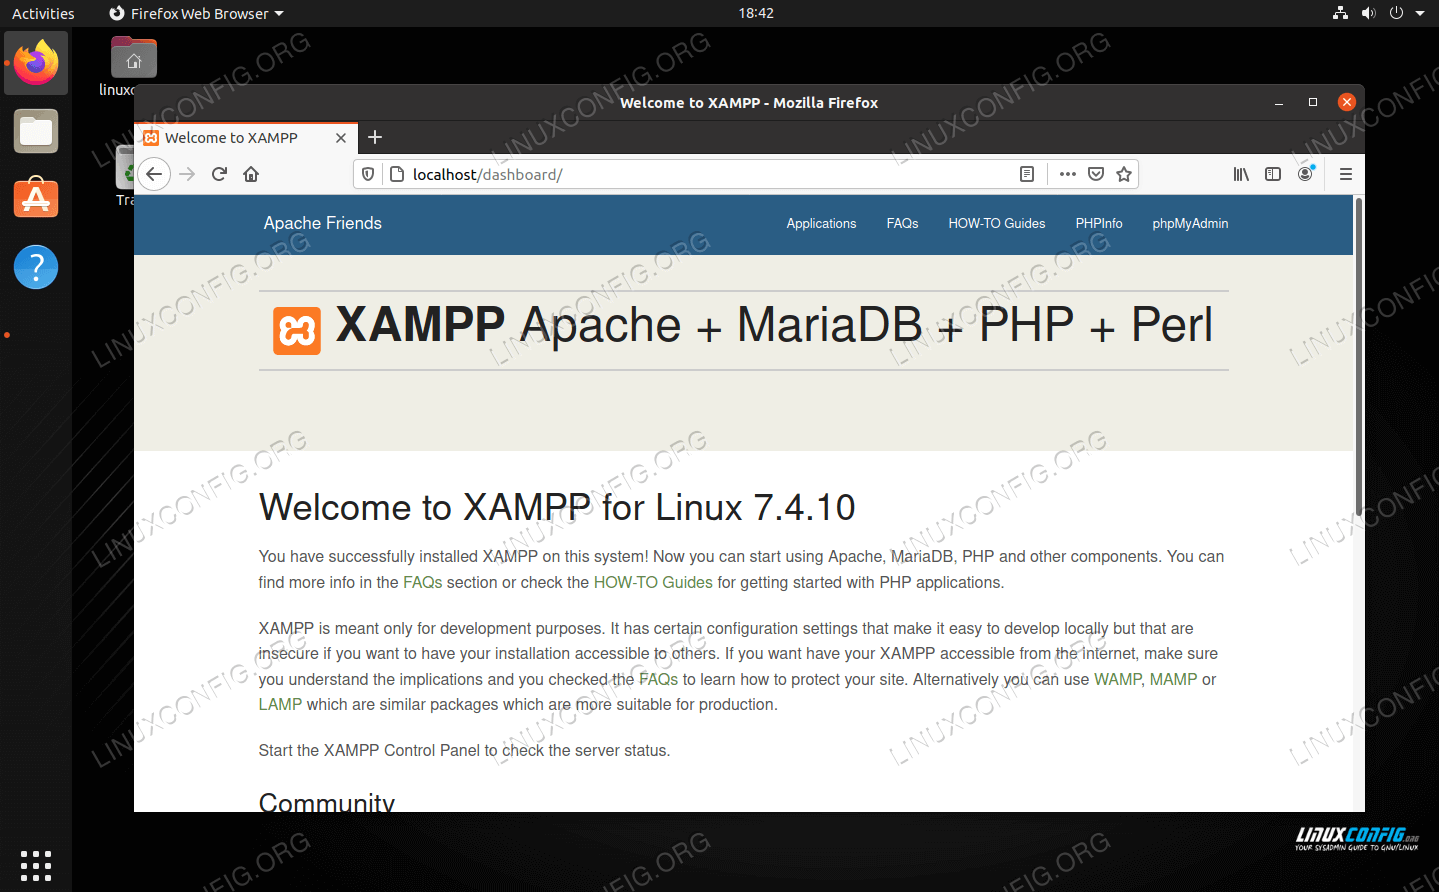 The components of XAMPP as well as additional apps can be controlled from the web panel